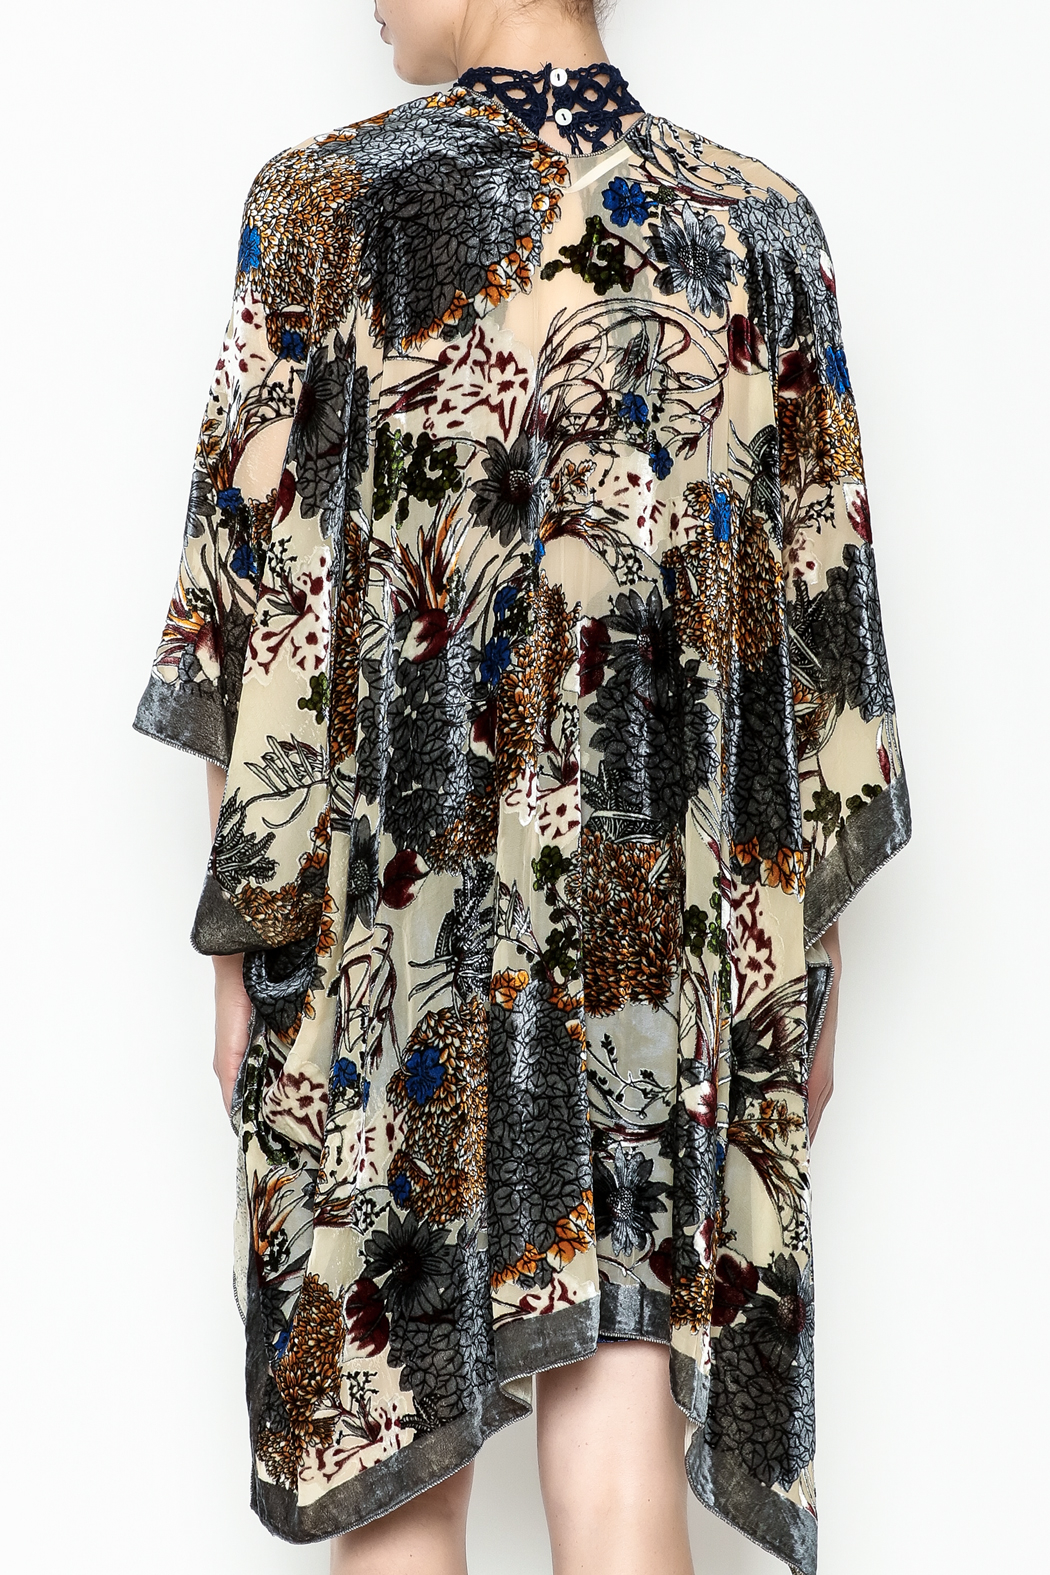 Simply Noelle Floral Burn Out One Size Fits Most Cardi Wrap